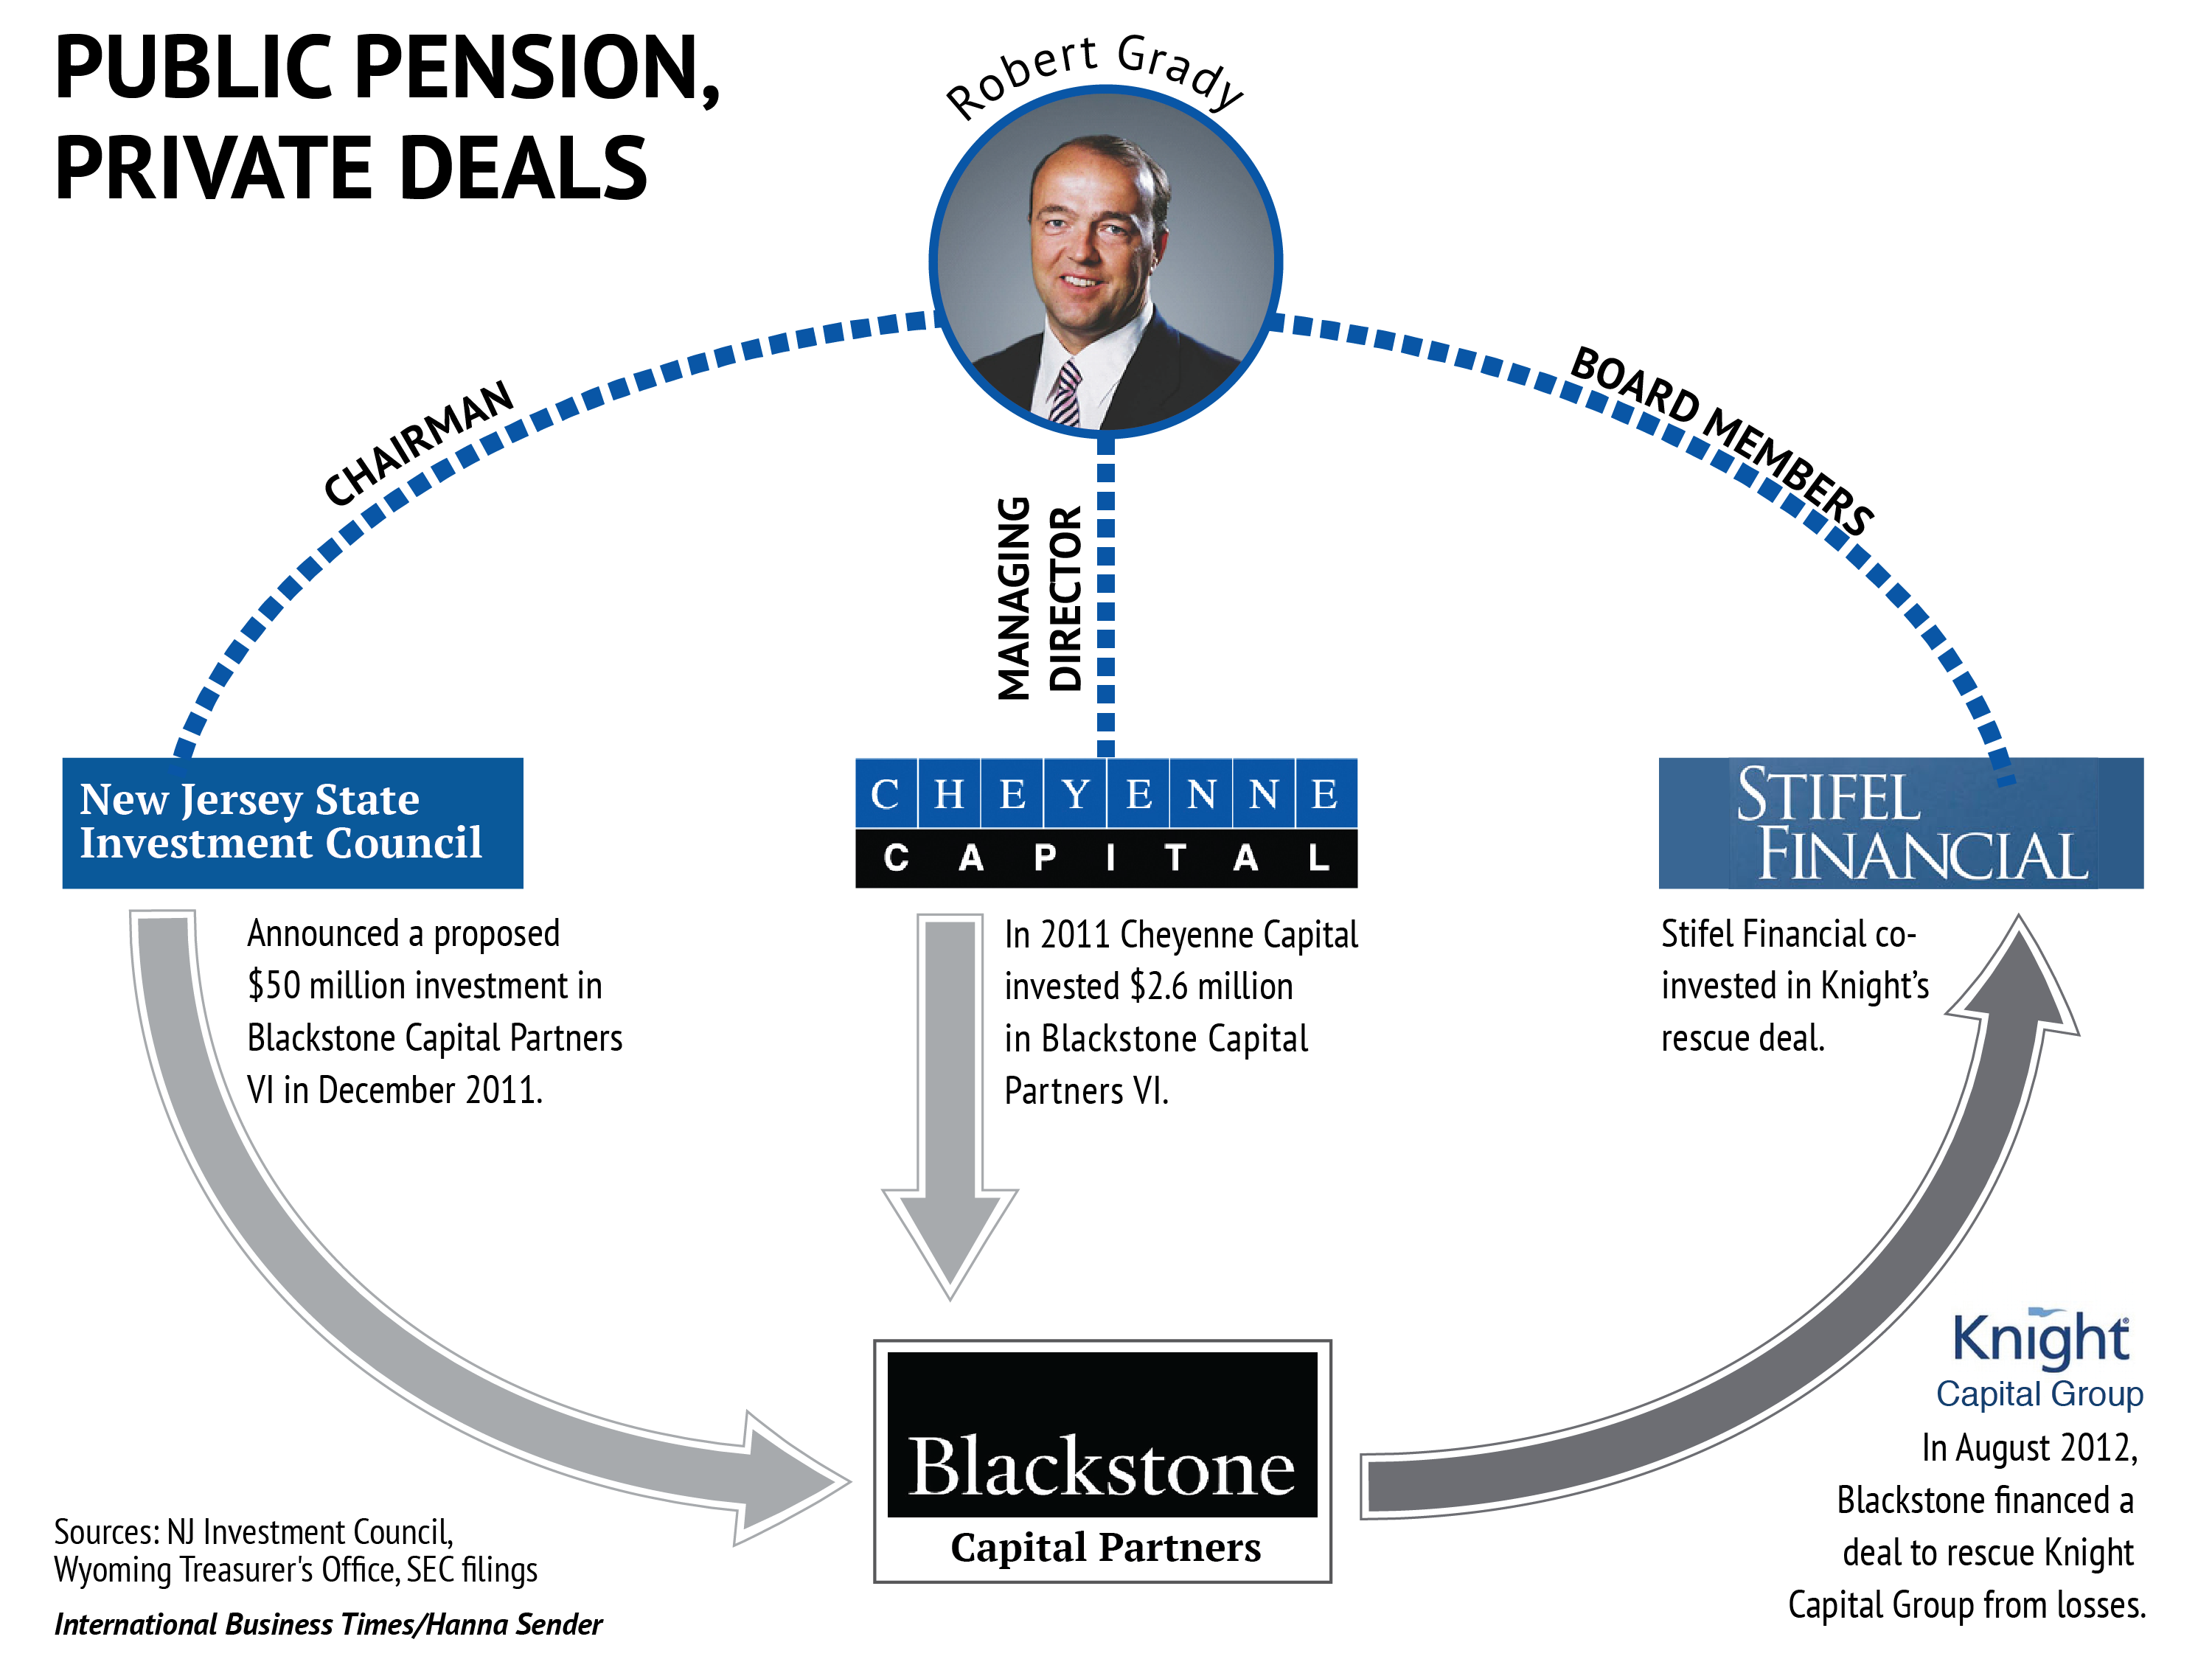 Public Pension, Private Deals, Grady, Sirota, New Jersey